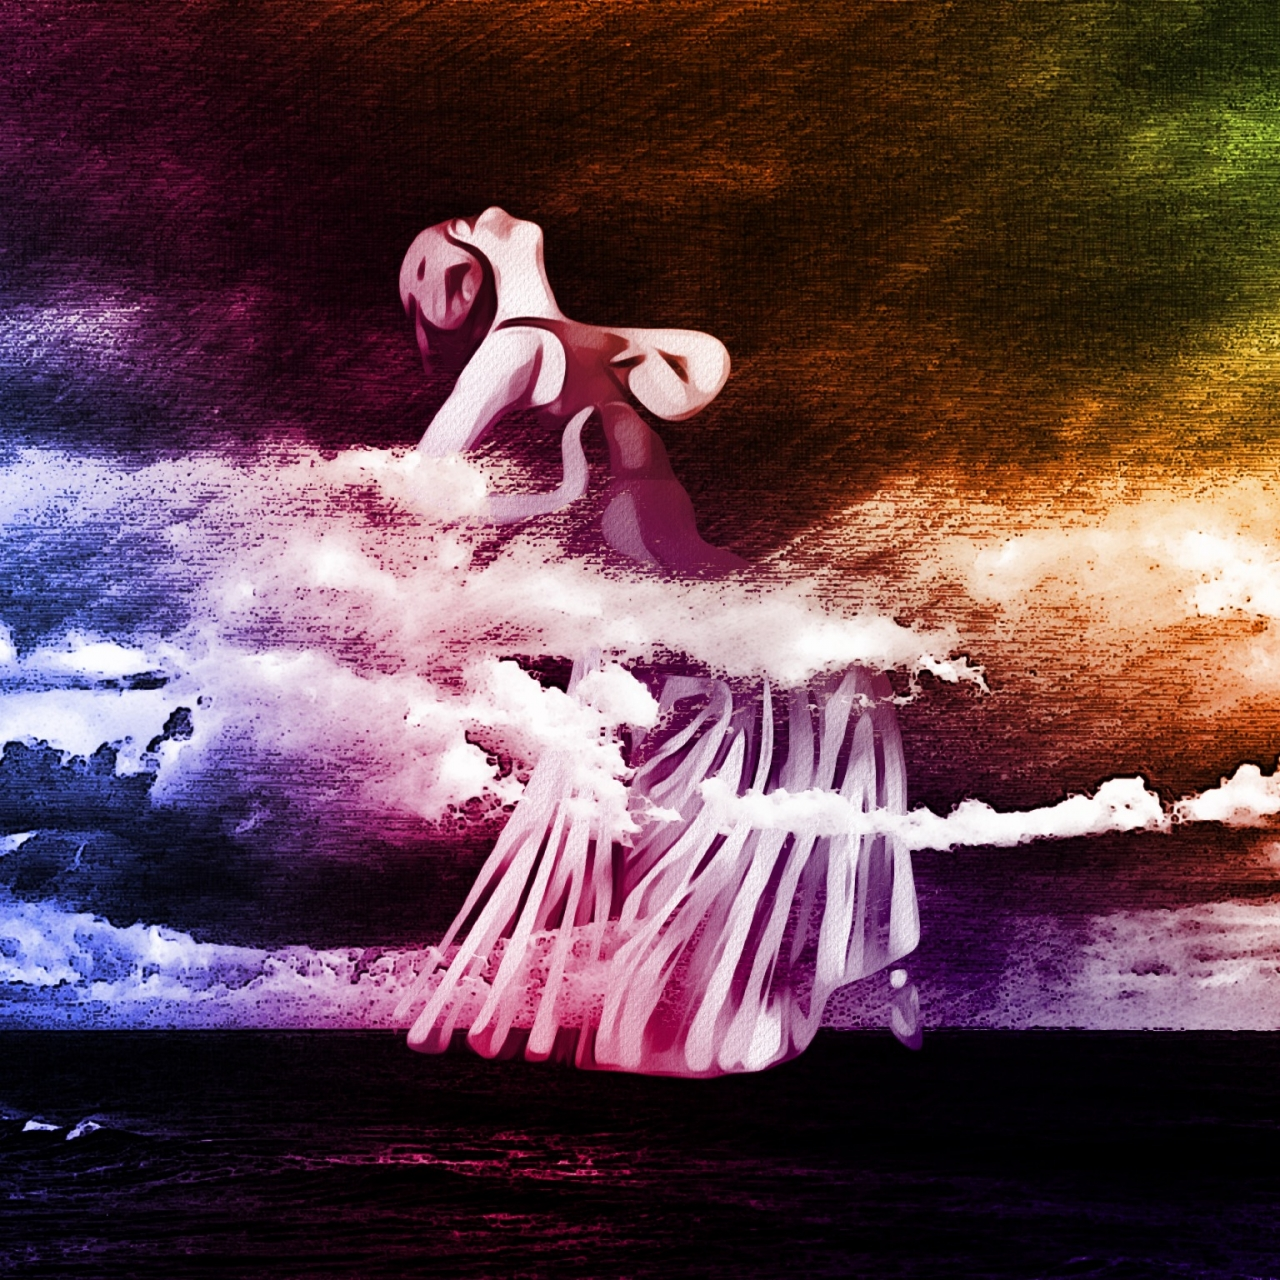 The muse of storms